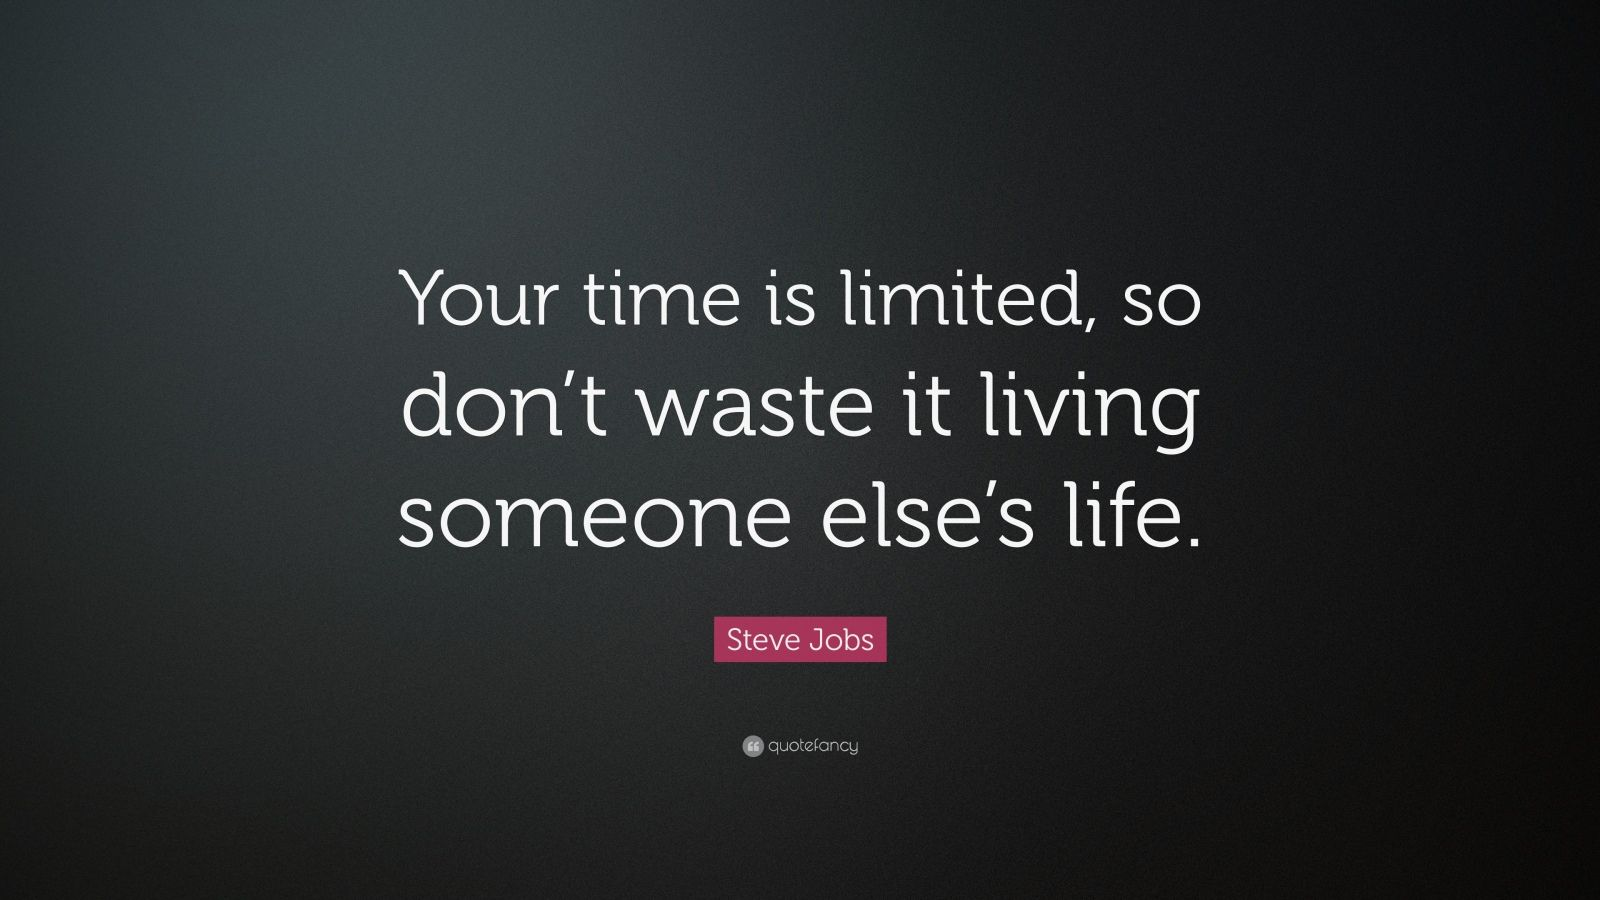 Steve Jobs Your Time Is Limited so Don't Waste It